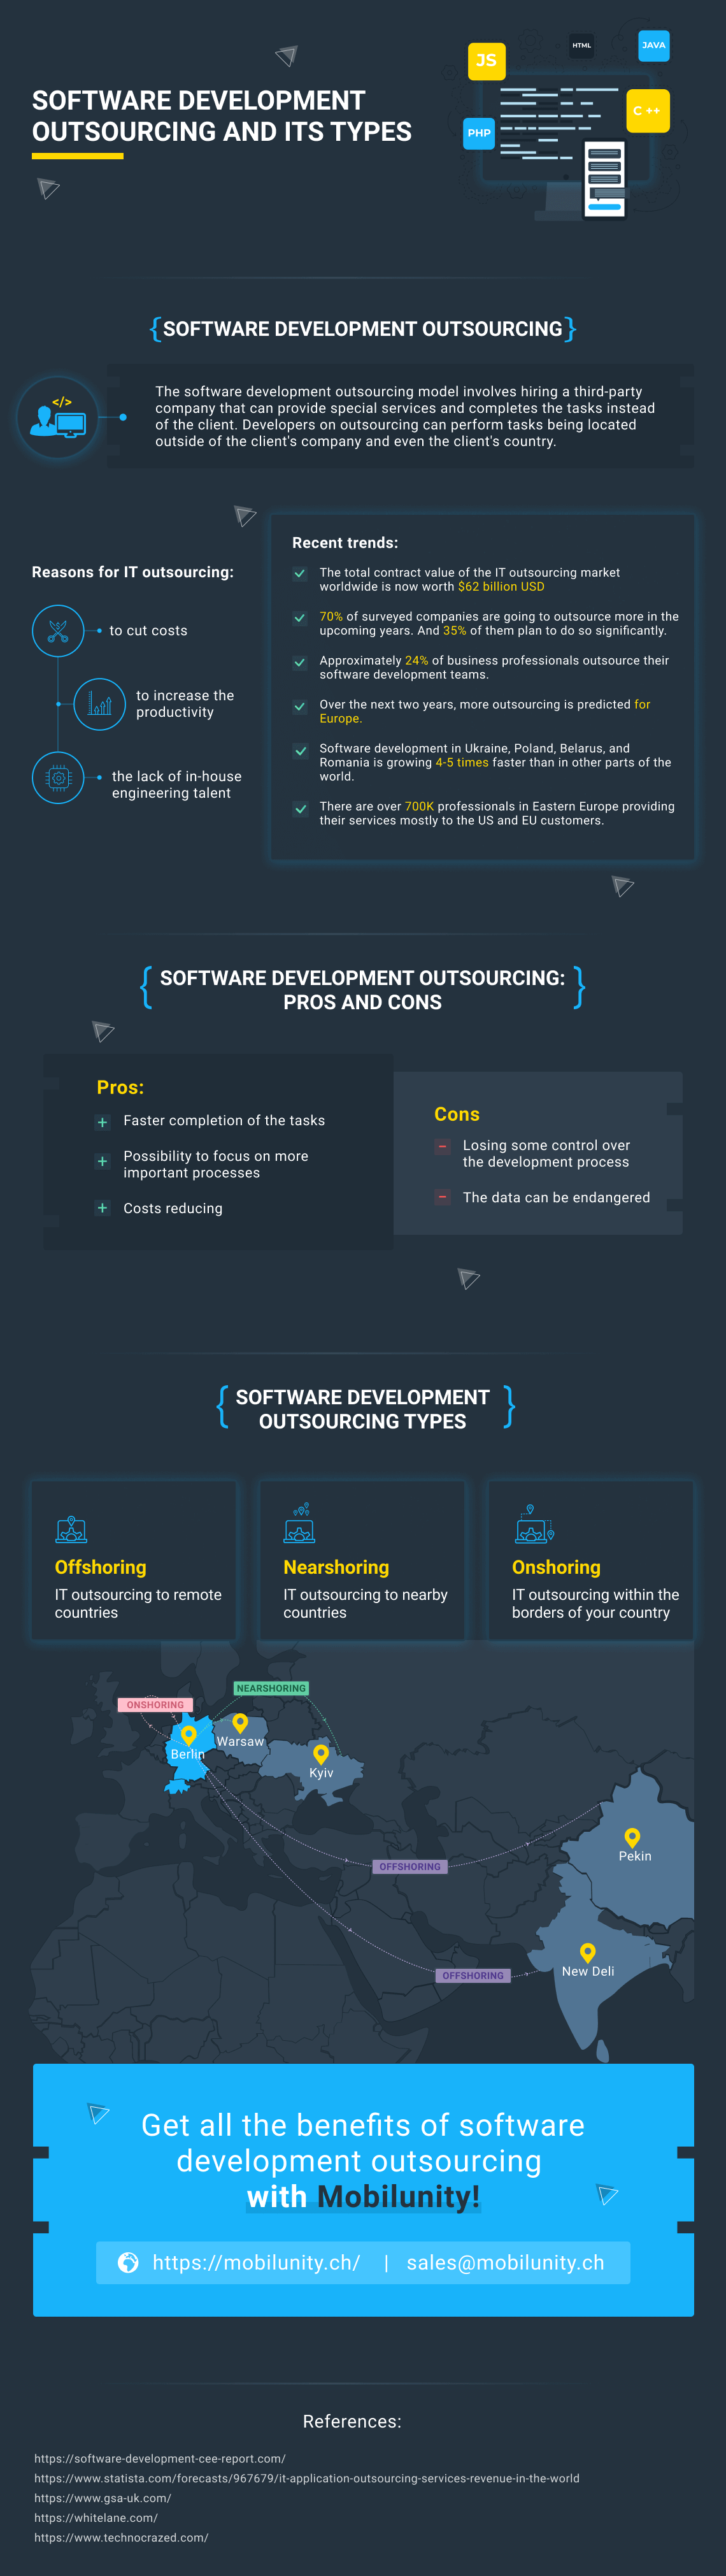 Software Development Outsourcing and Its Types